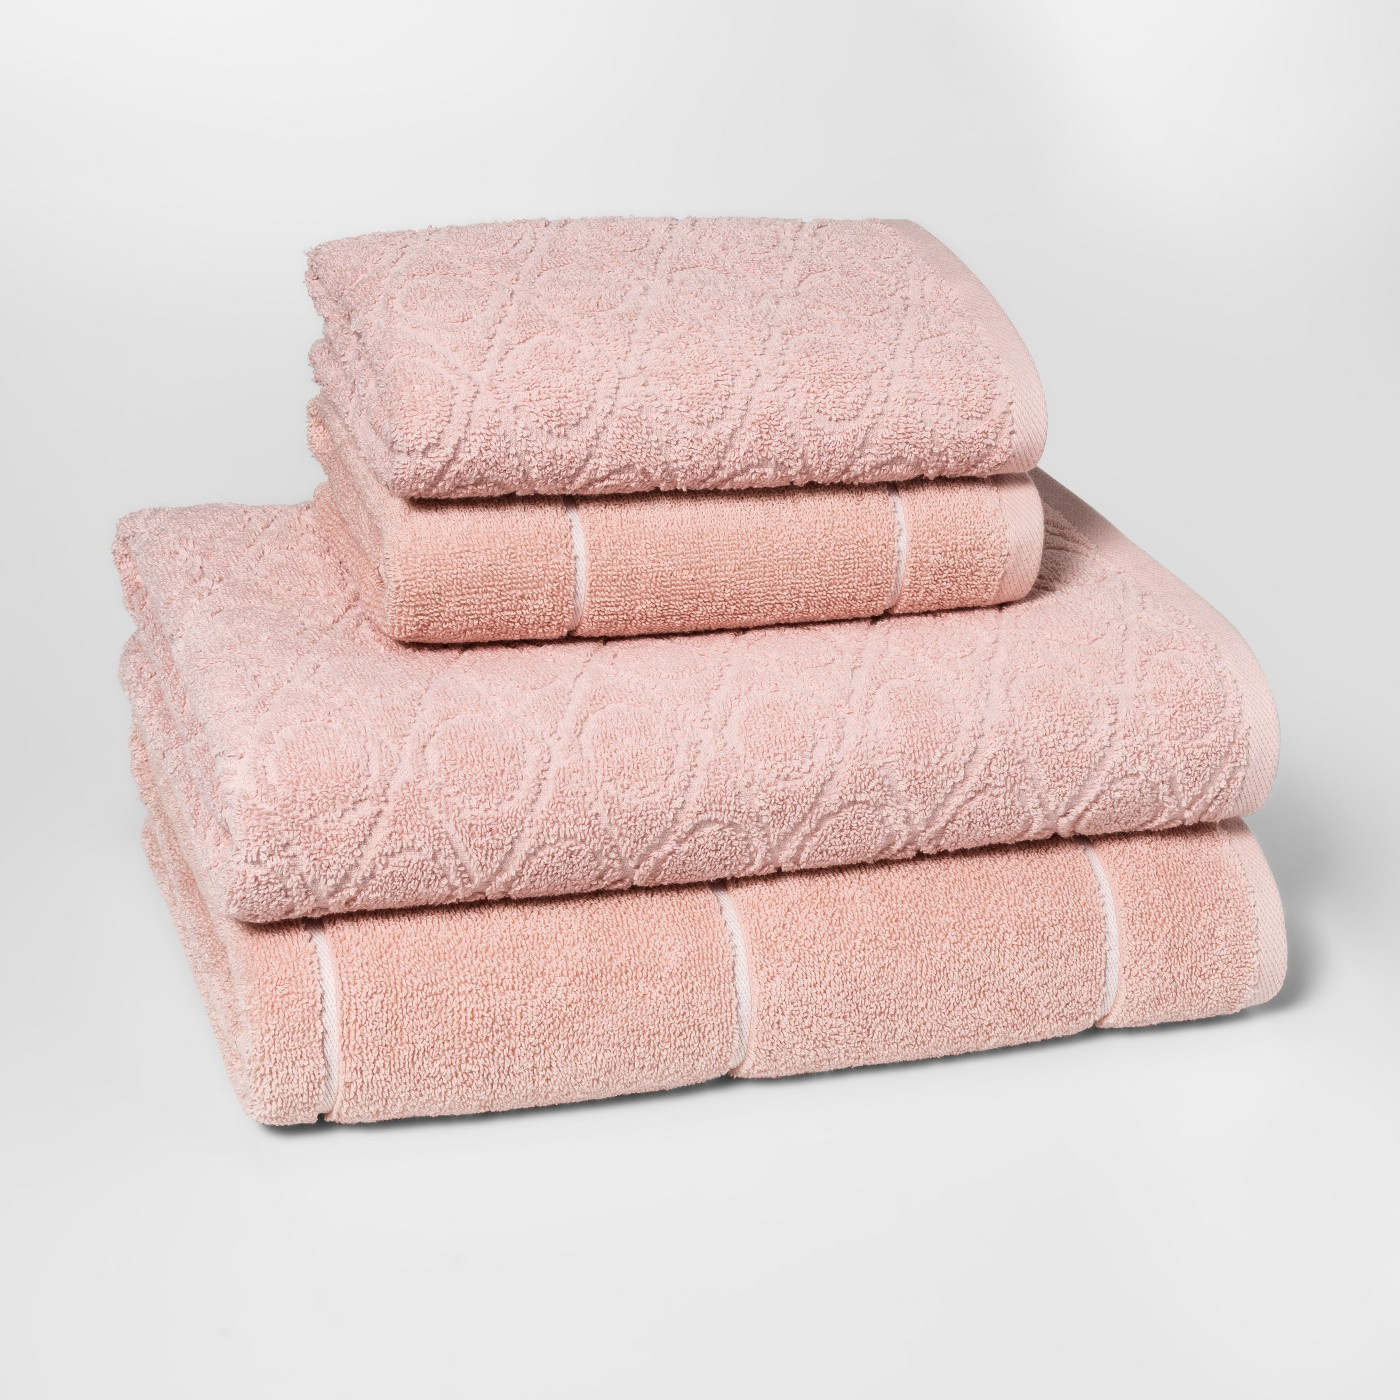 Woven Pattern Bath Towel Set Peach - Project 62™ - image 1 of 2